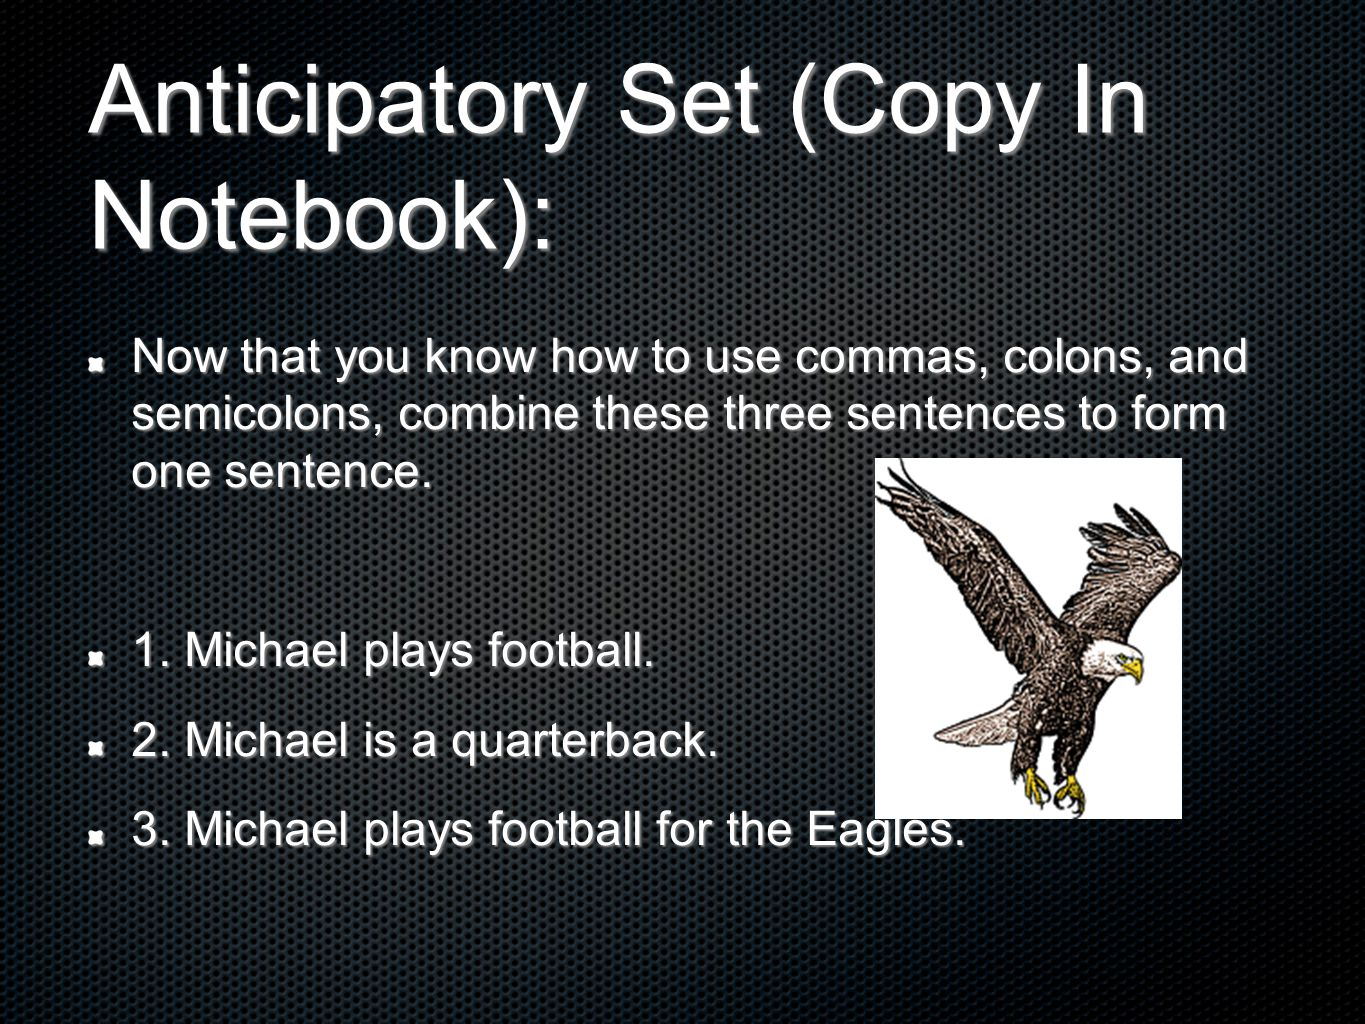 Anticipatory Set (Copy In Notebook): Now that you know how to use commas, colons, and semicolons, combine these three sentences to form one sentence.